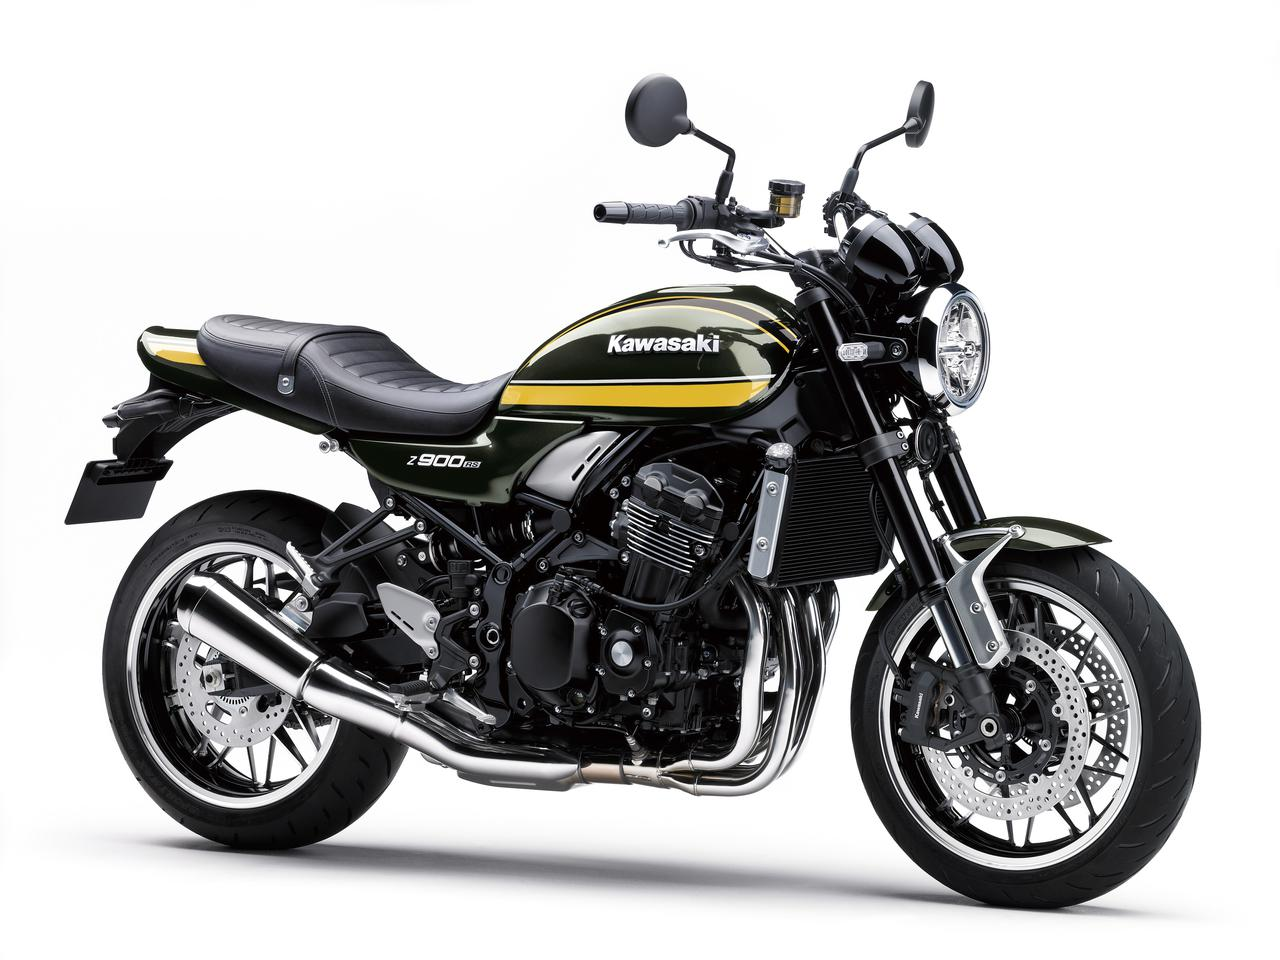 Images : 5番目の画像 - カワサキ「Z900RS」「Z900RS CAFE」2021年モデル - webオートバイ